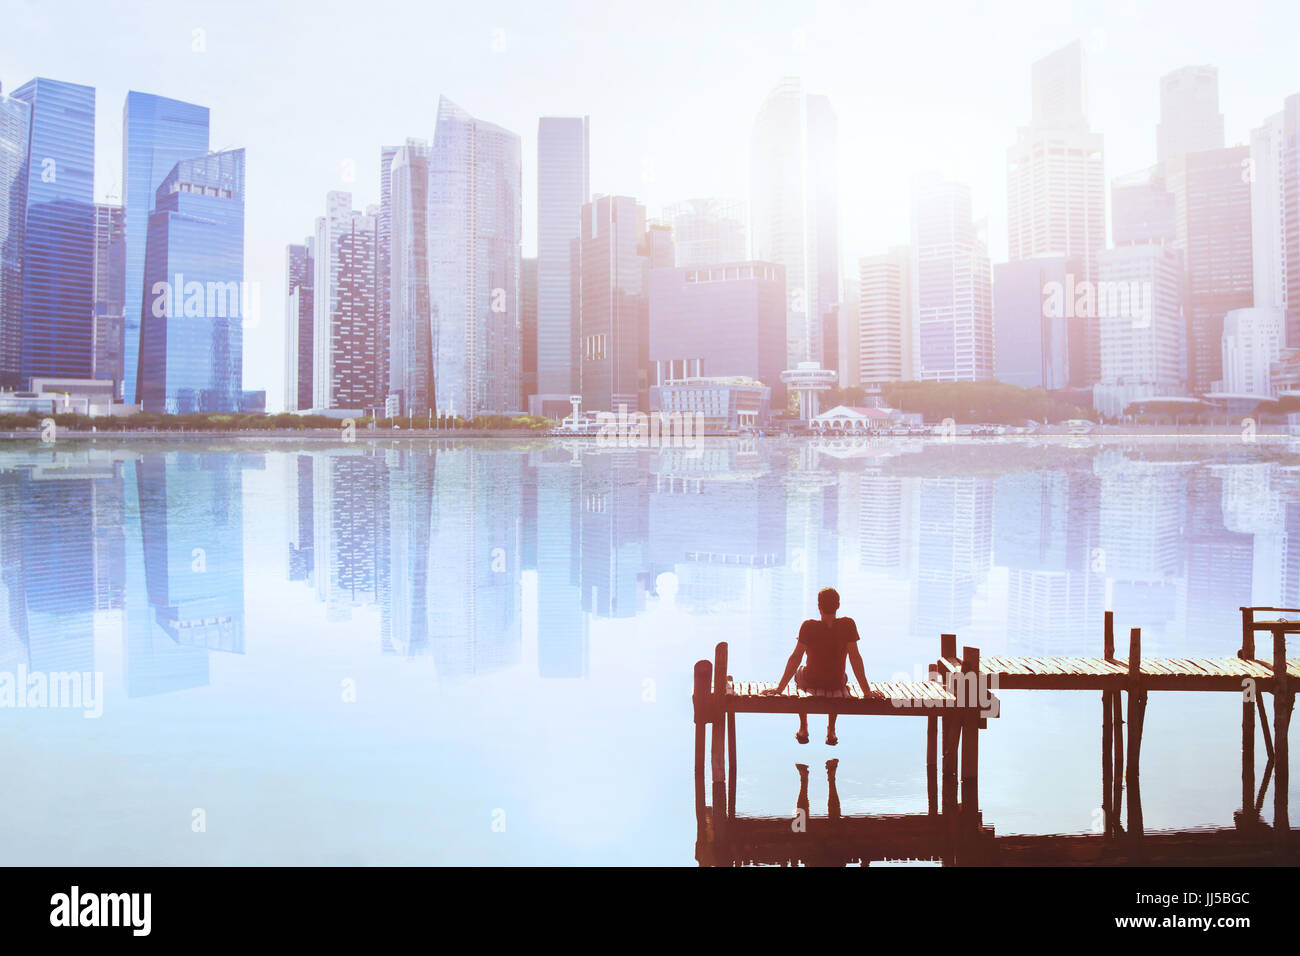 dream concept, man sitting on the pier and enjoying modern cityscape skyline view - Stock Image